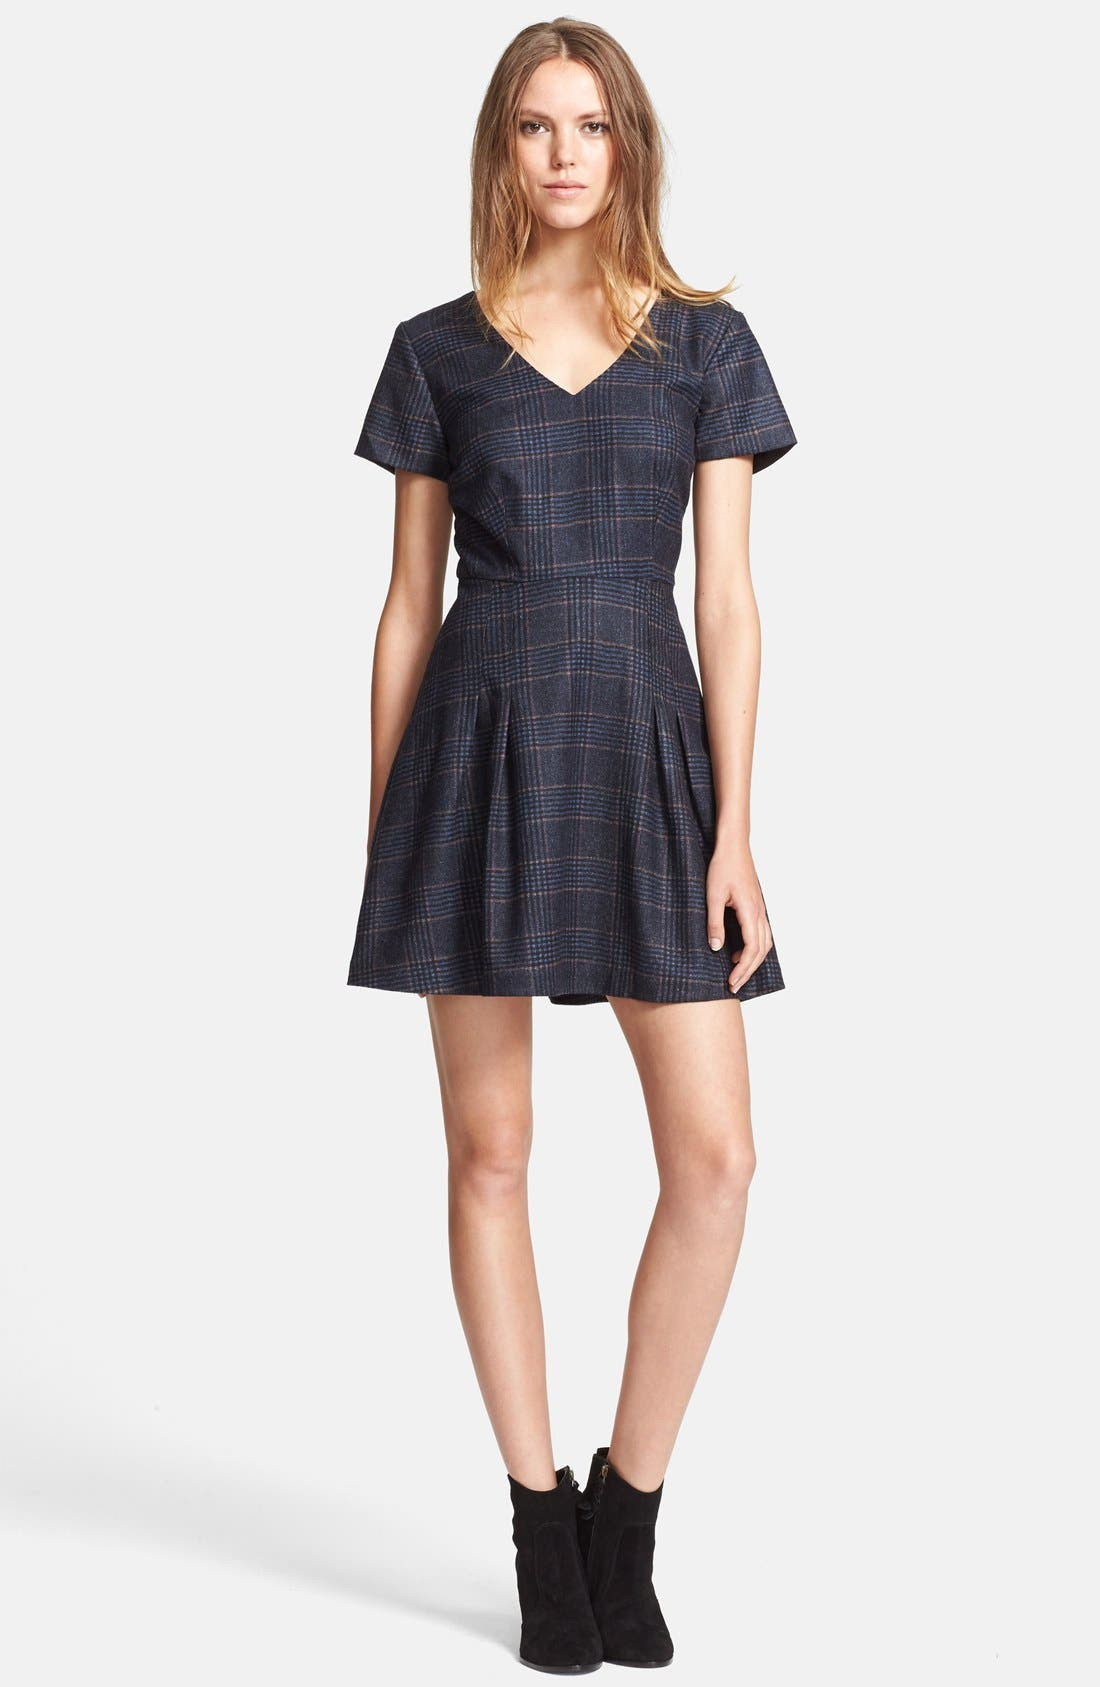 Alternate Image 1 Selected - Joie 'Raley' Plaid Fit & Flare Dress